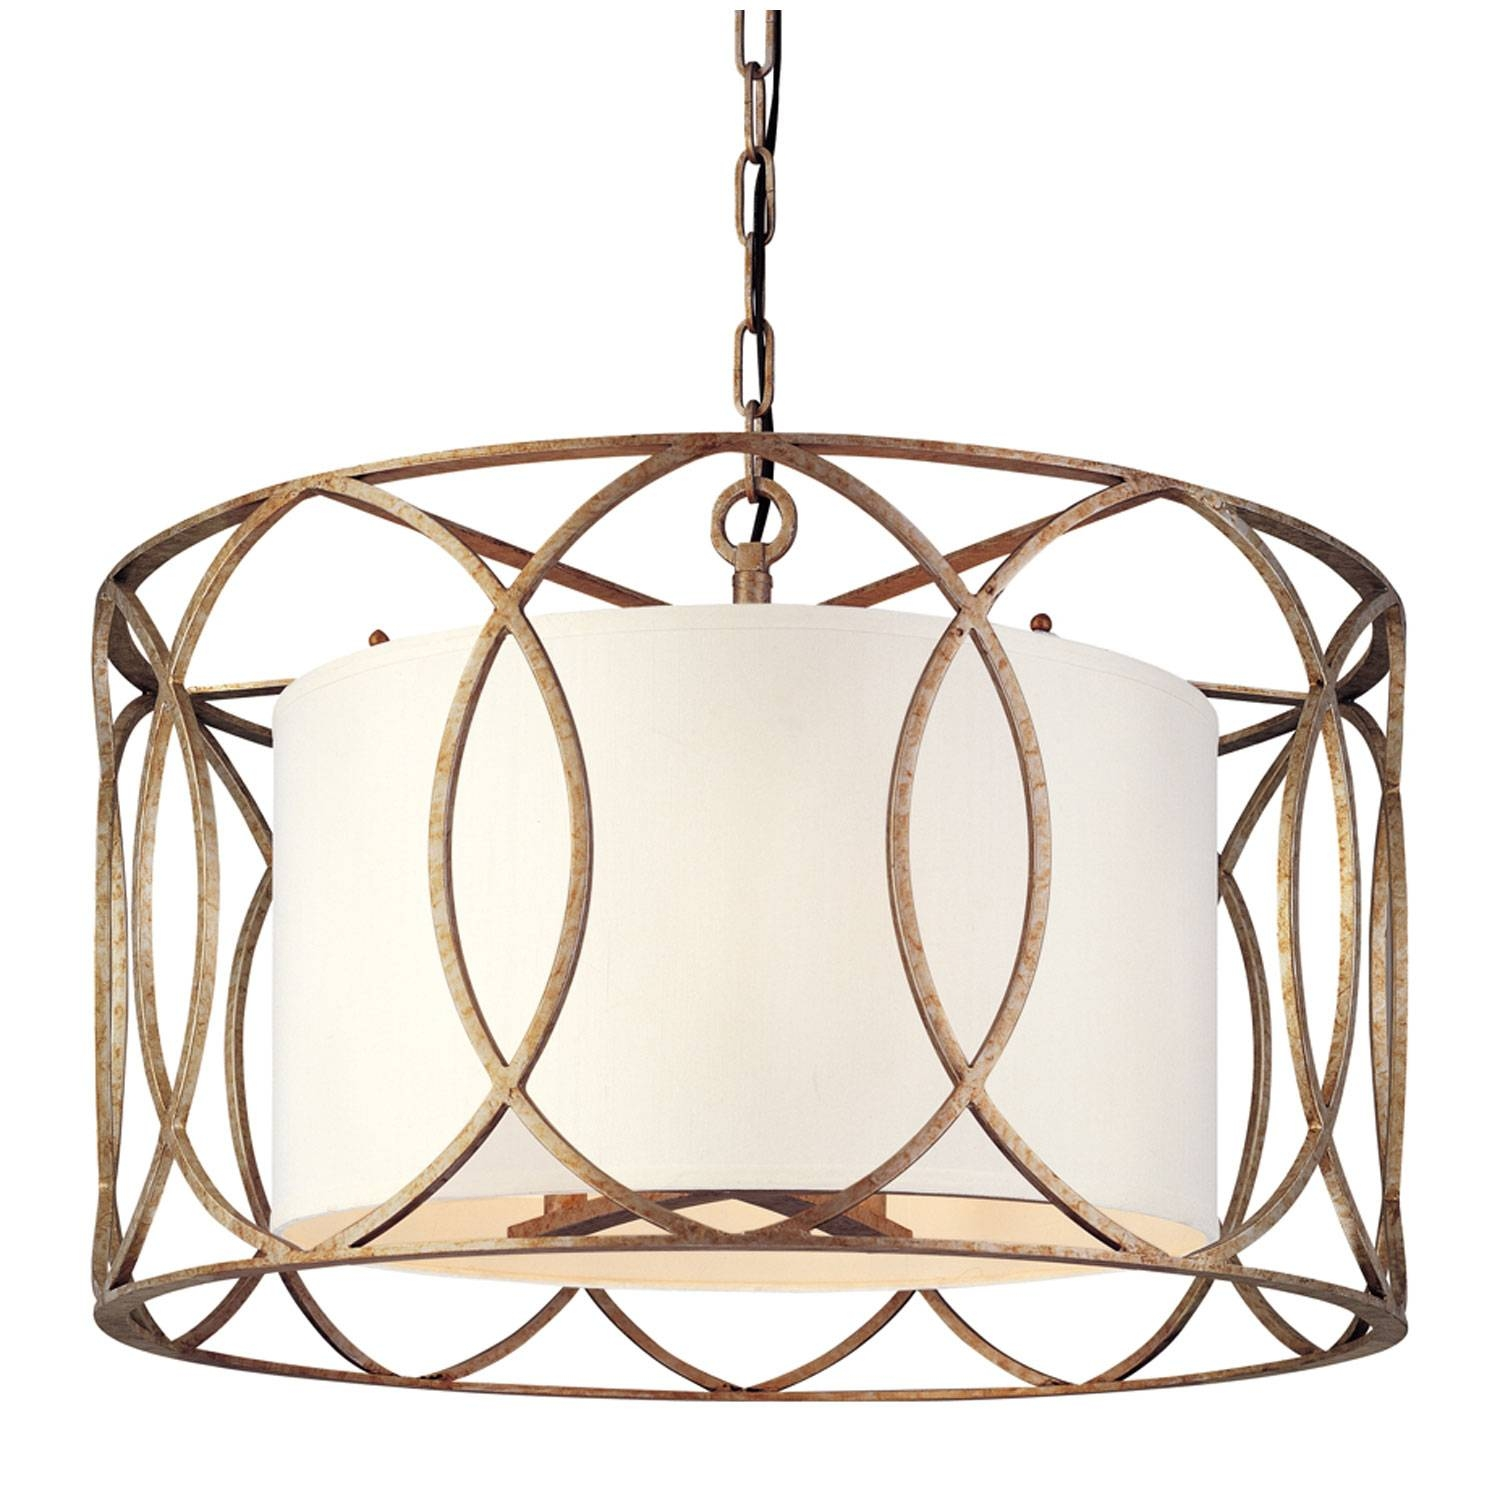 Troy Sausalito Five Light Drum Pendant On Sale In Sausalito Pendant Lights (View 13 of 15)